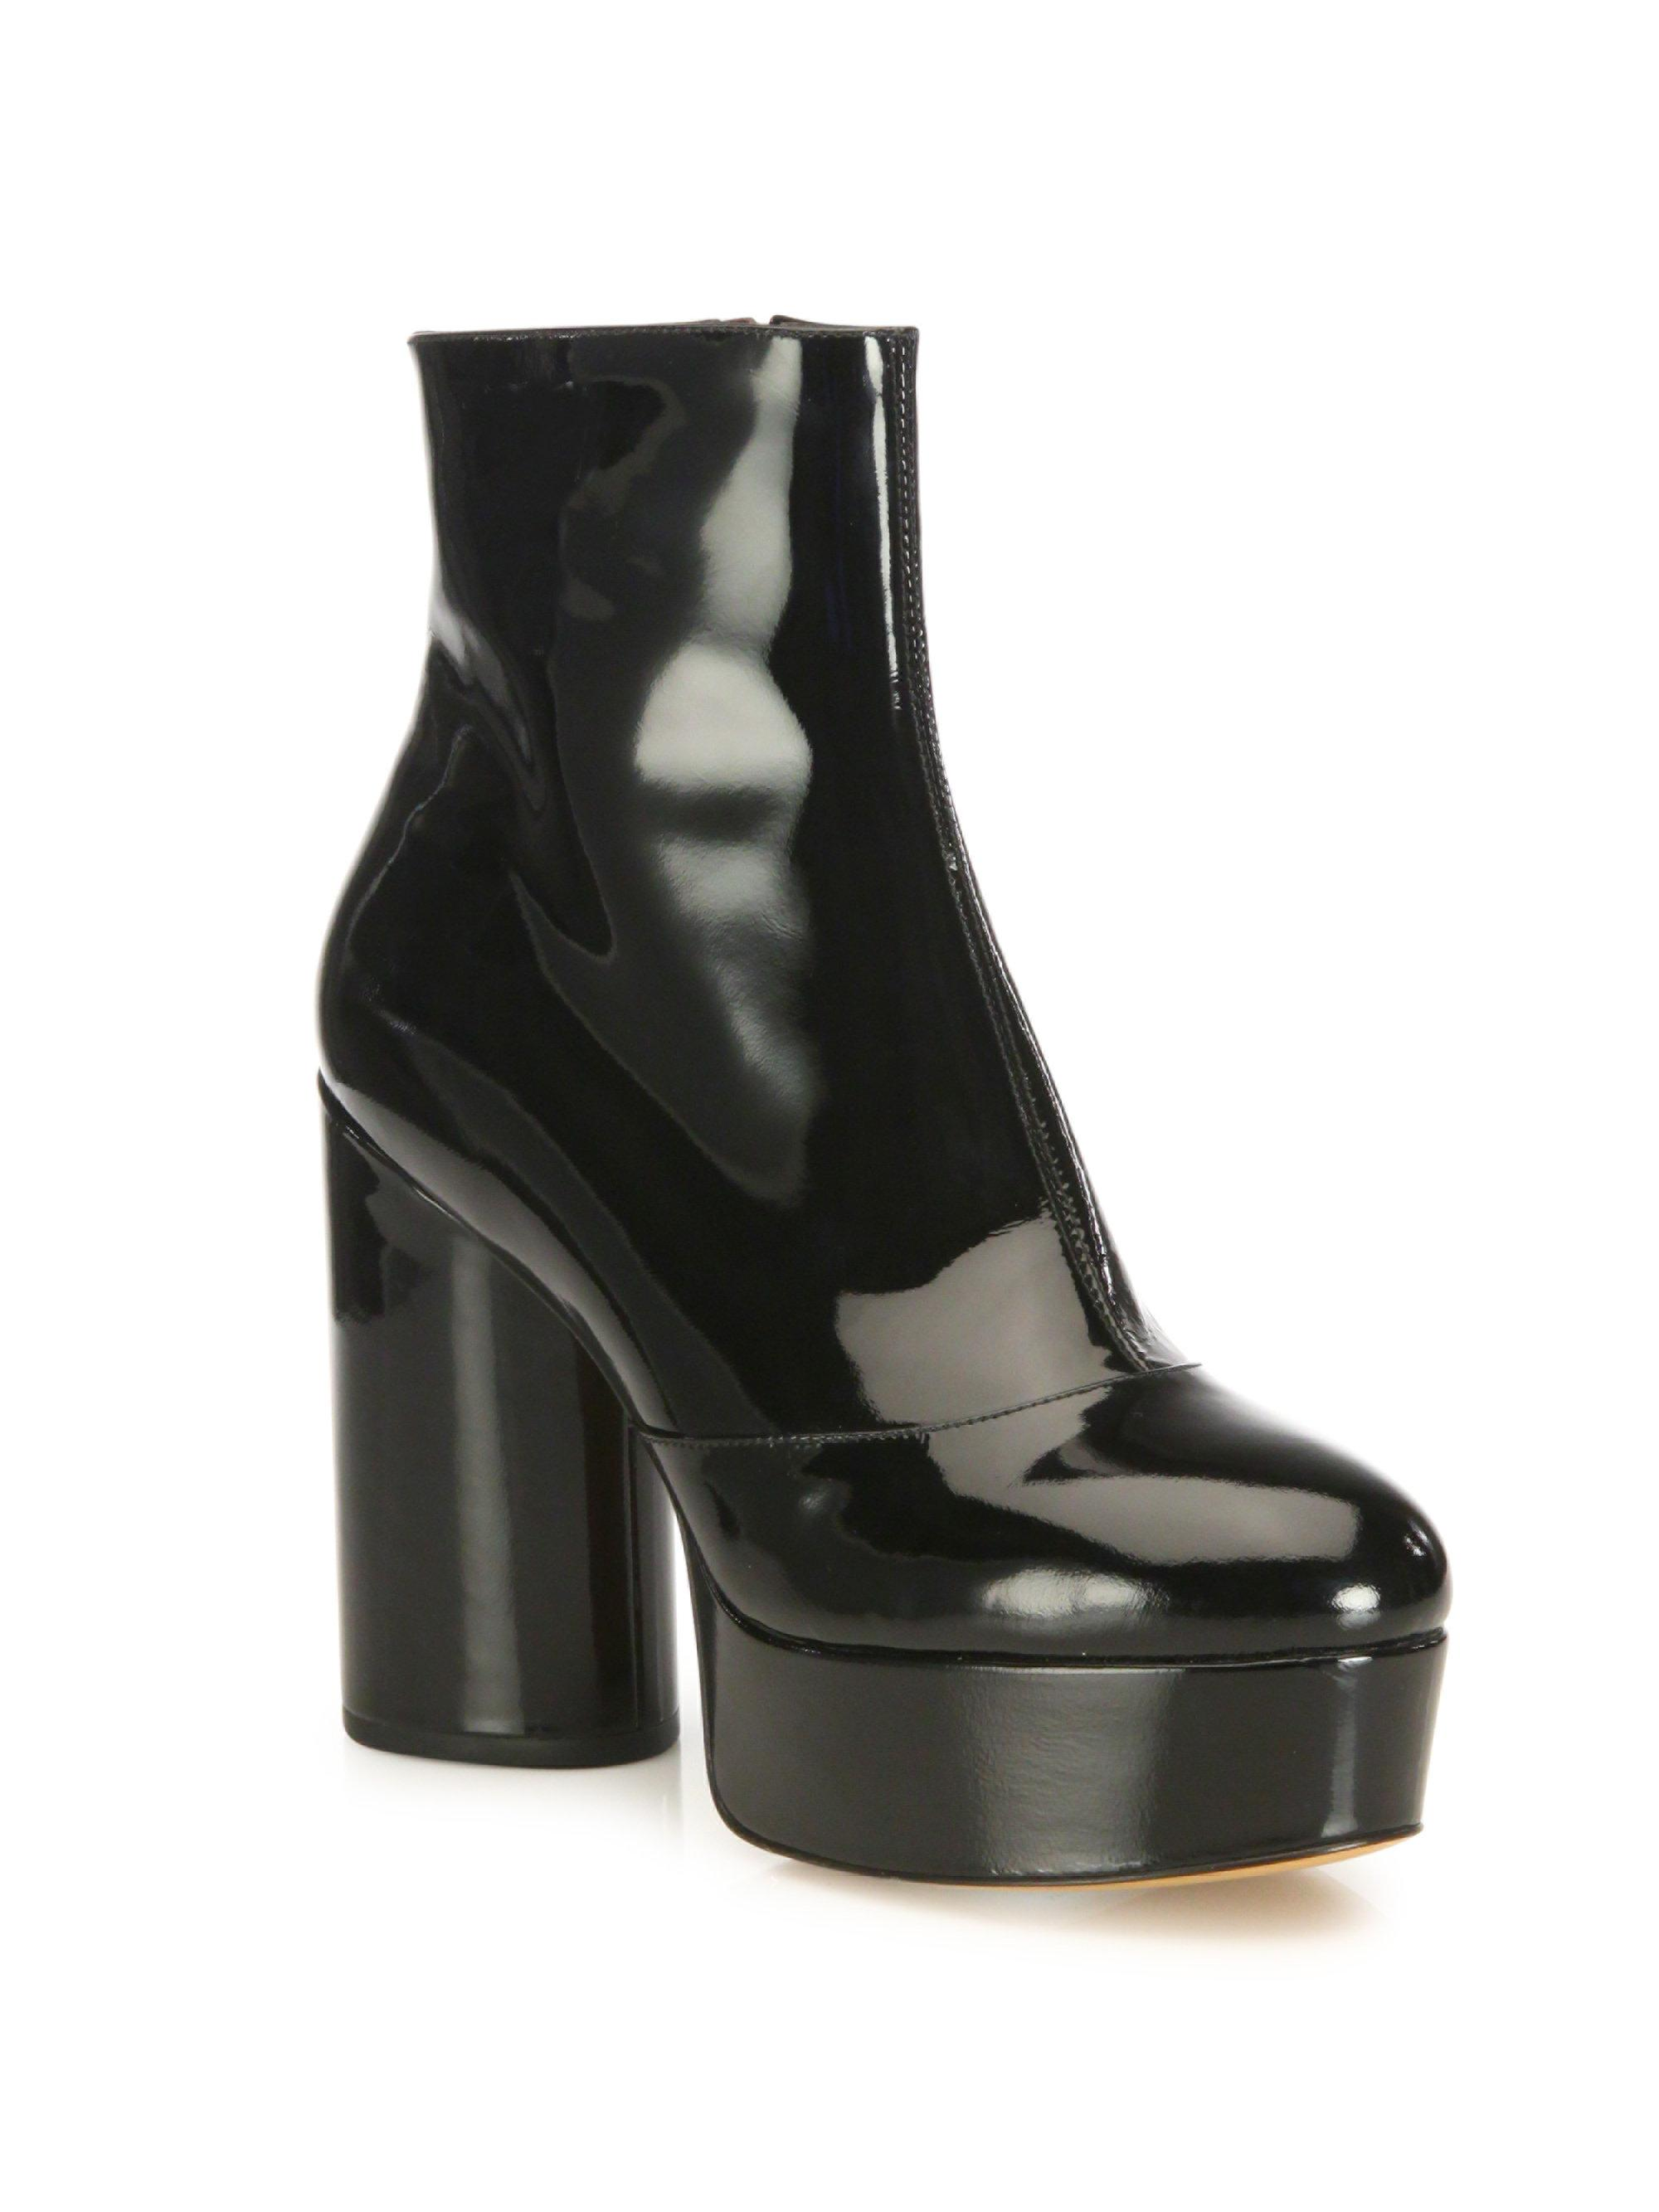 1e94822443d Lyst - Marc Jacobs Amber Patent Leather Platform Boots in Black